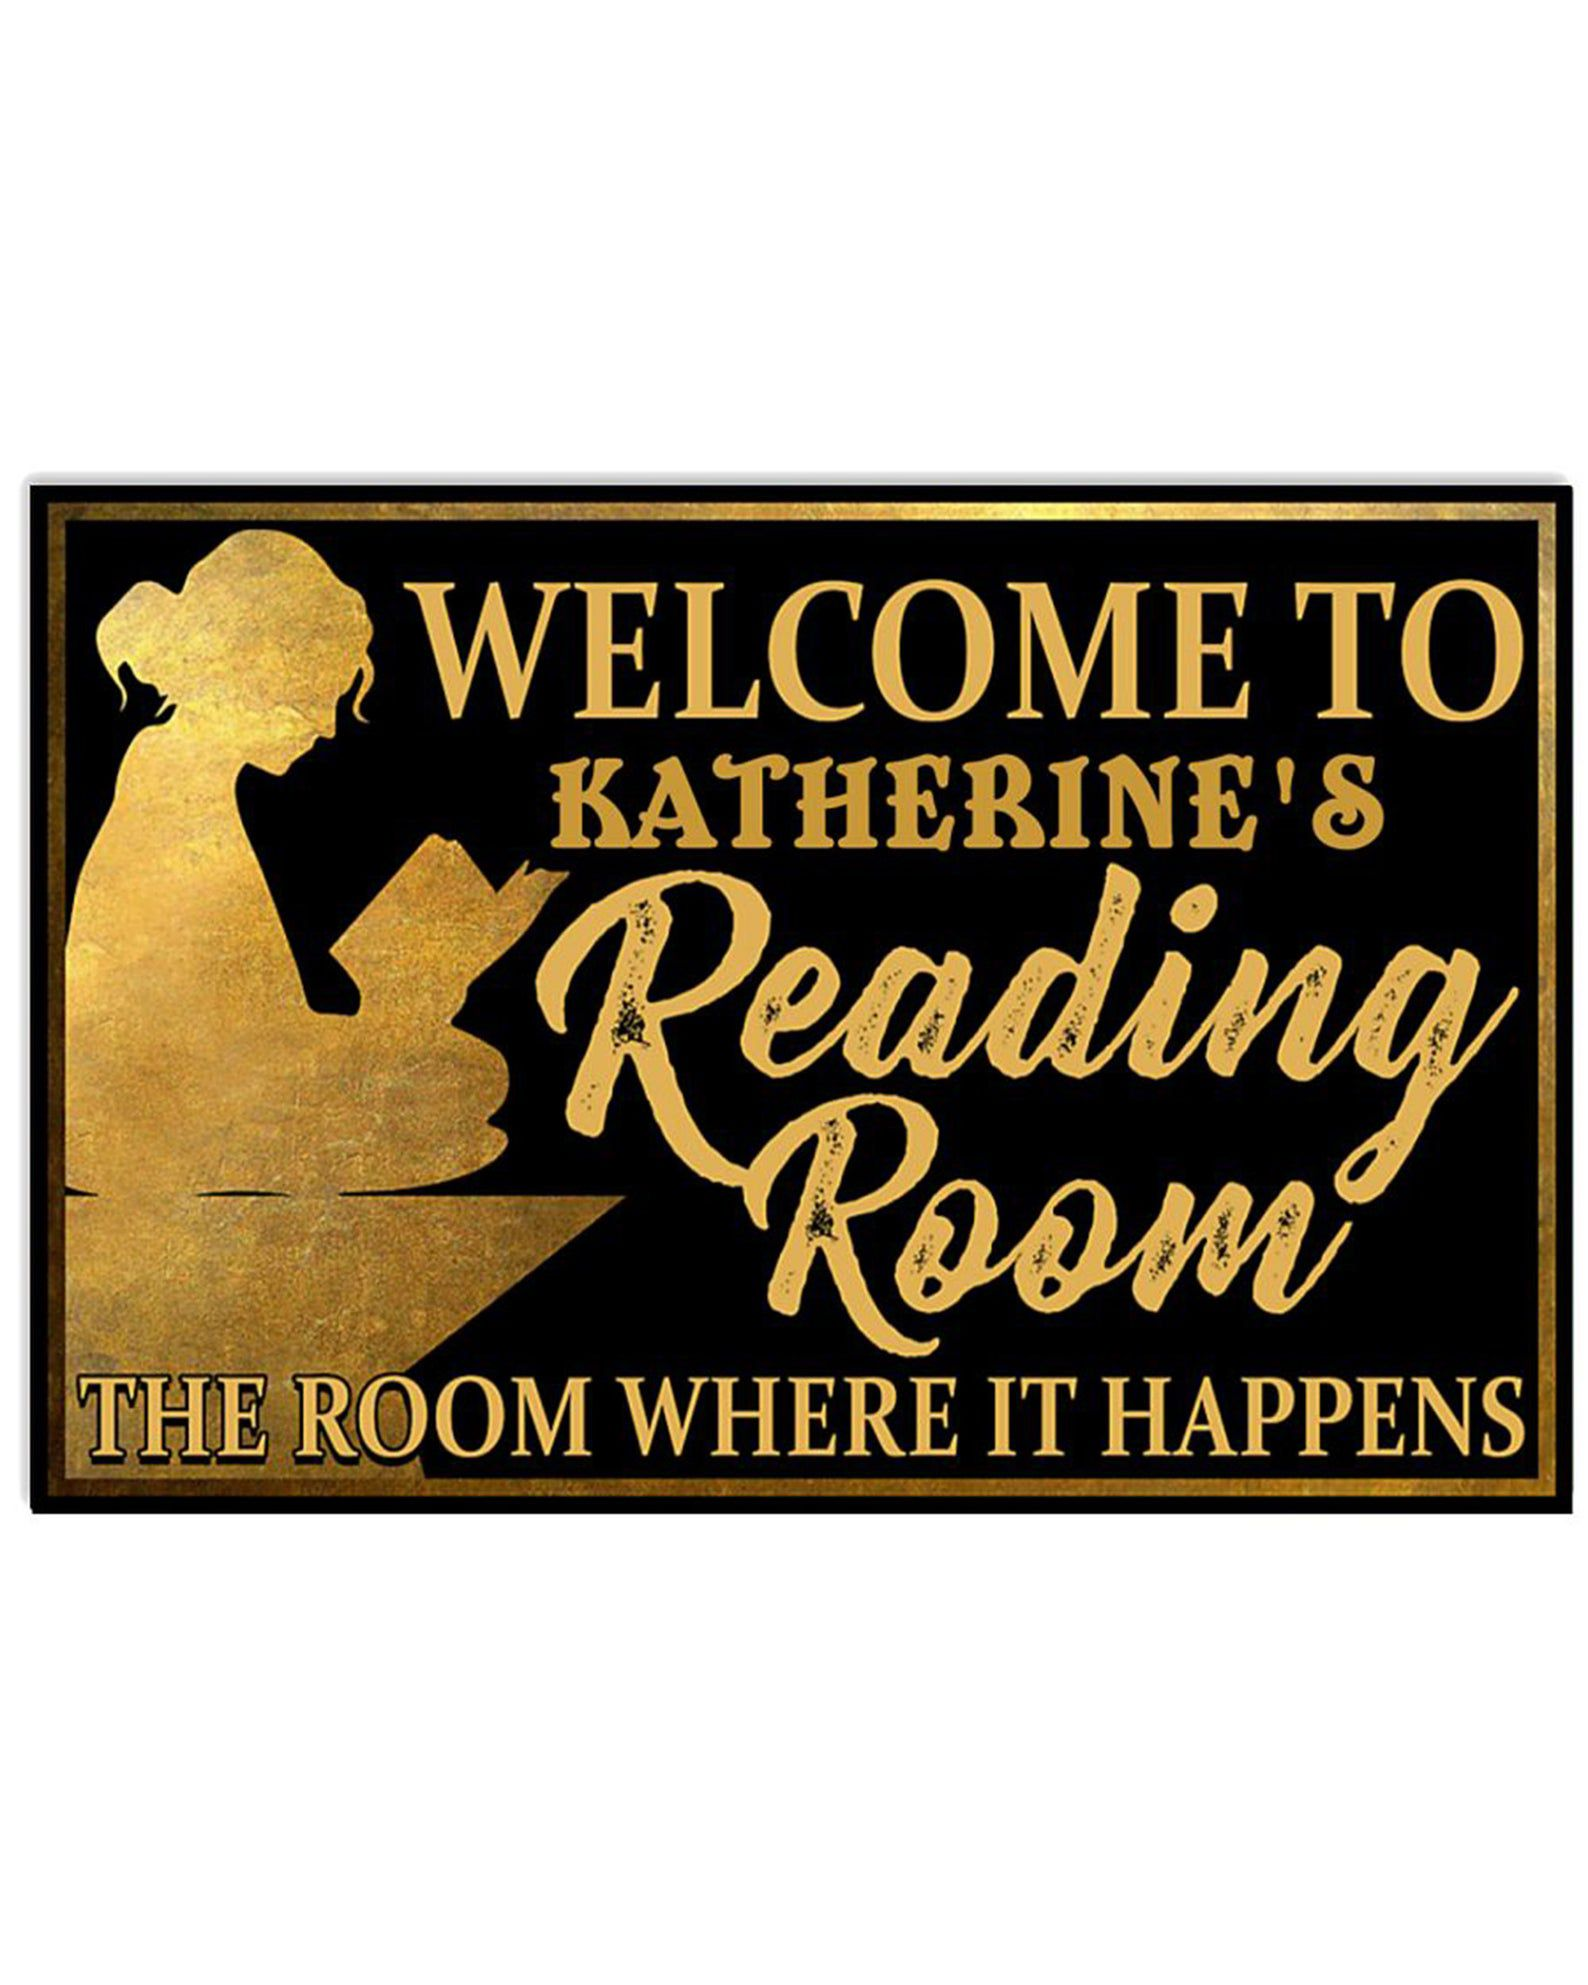 """Image of a black doormat with a golden, Hamilton-inspired design. It can be customized but reads """"Welcome to Katherine's Reading Room. The room where it happens."""""""